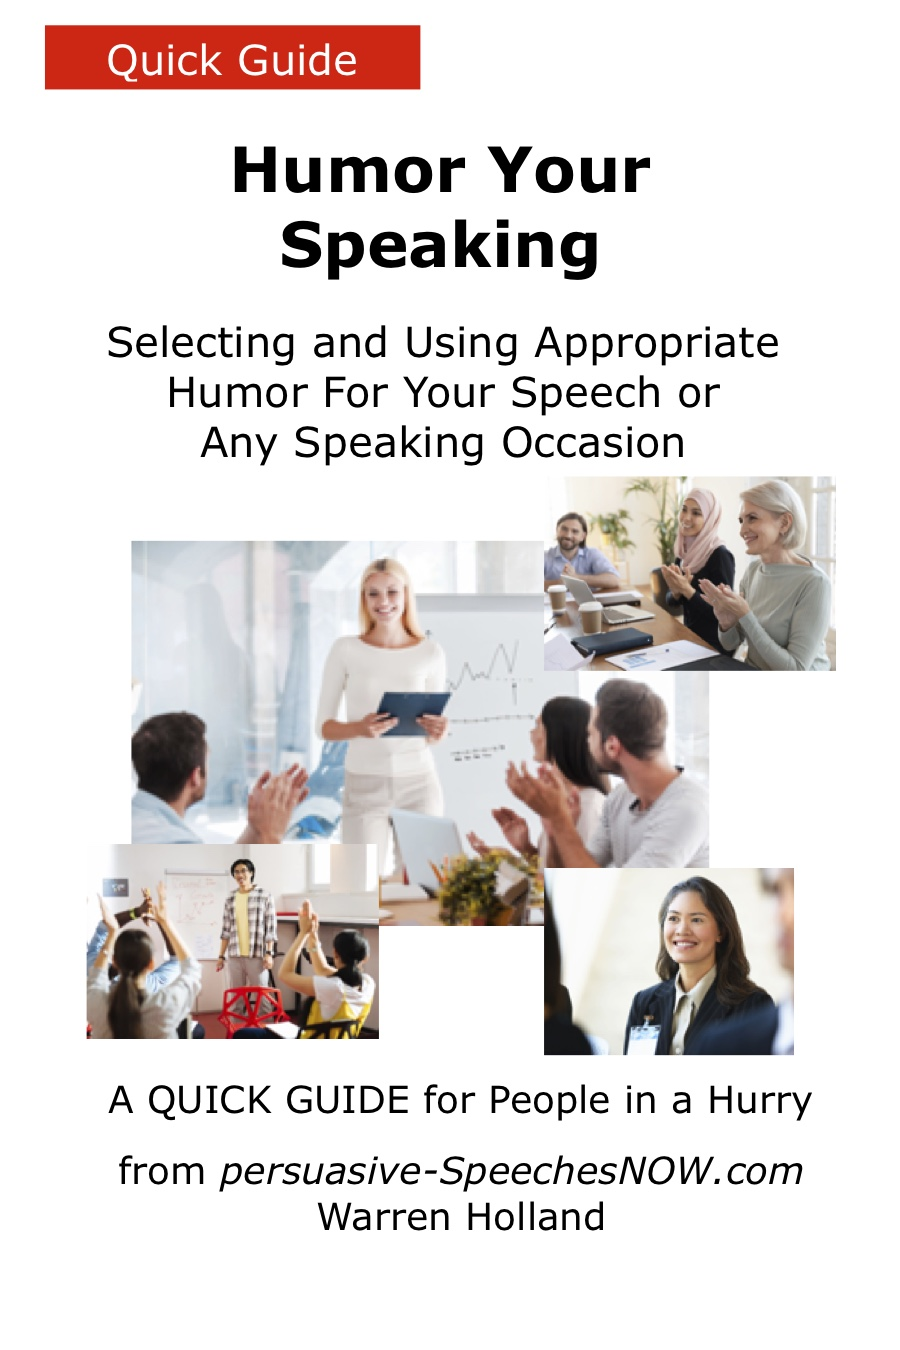 Humor Your Speaking at persuasive-SpeechesNow.com